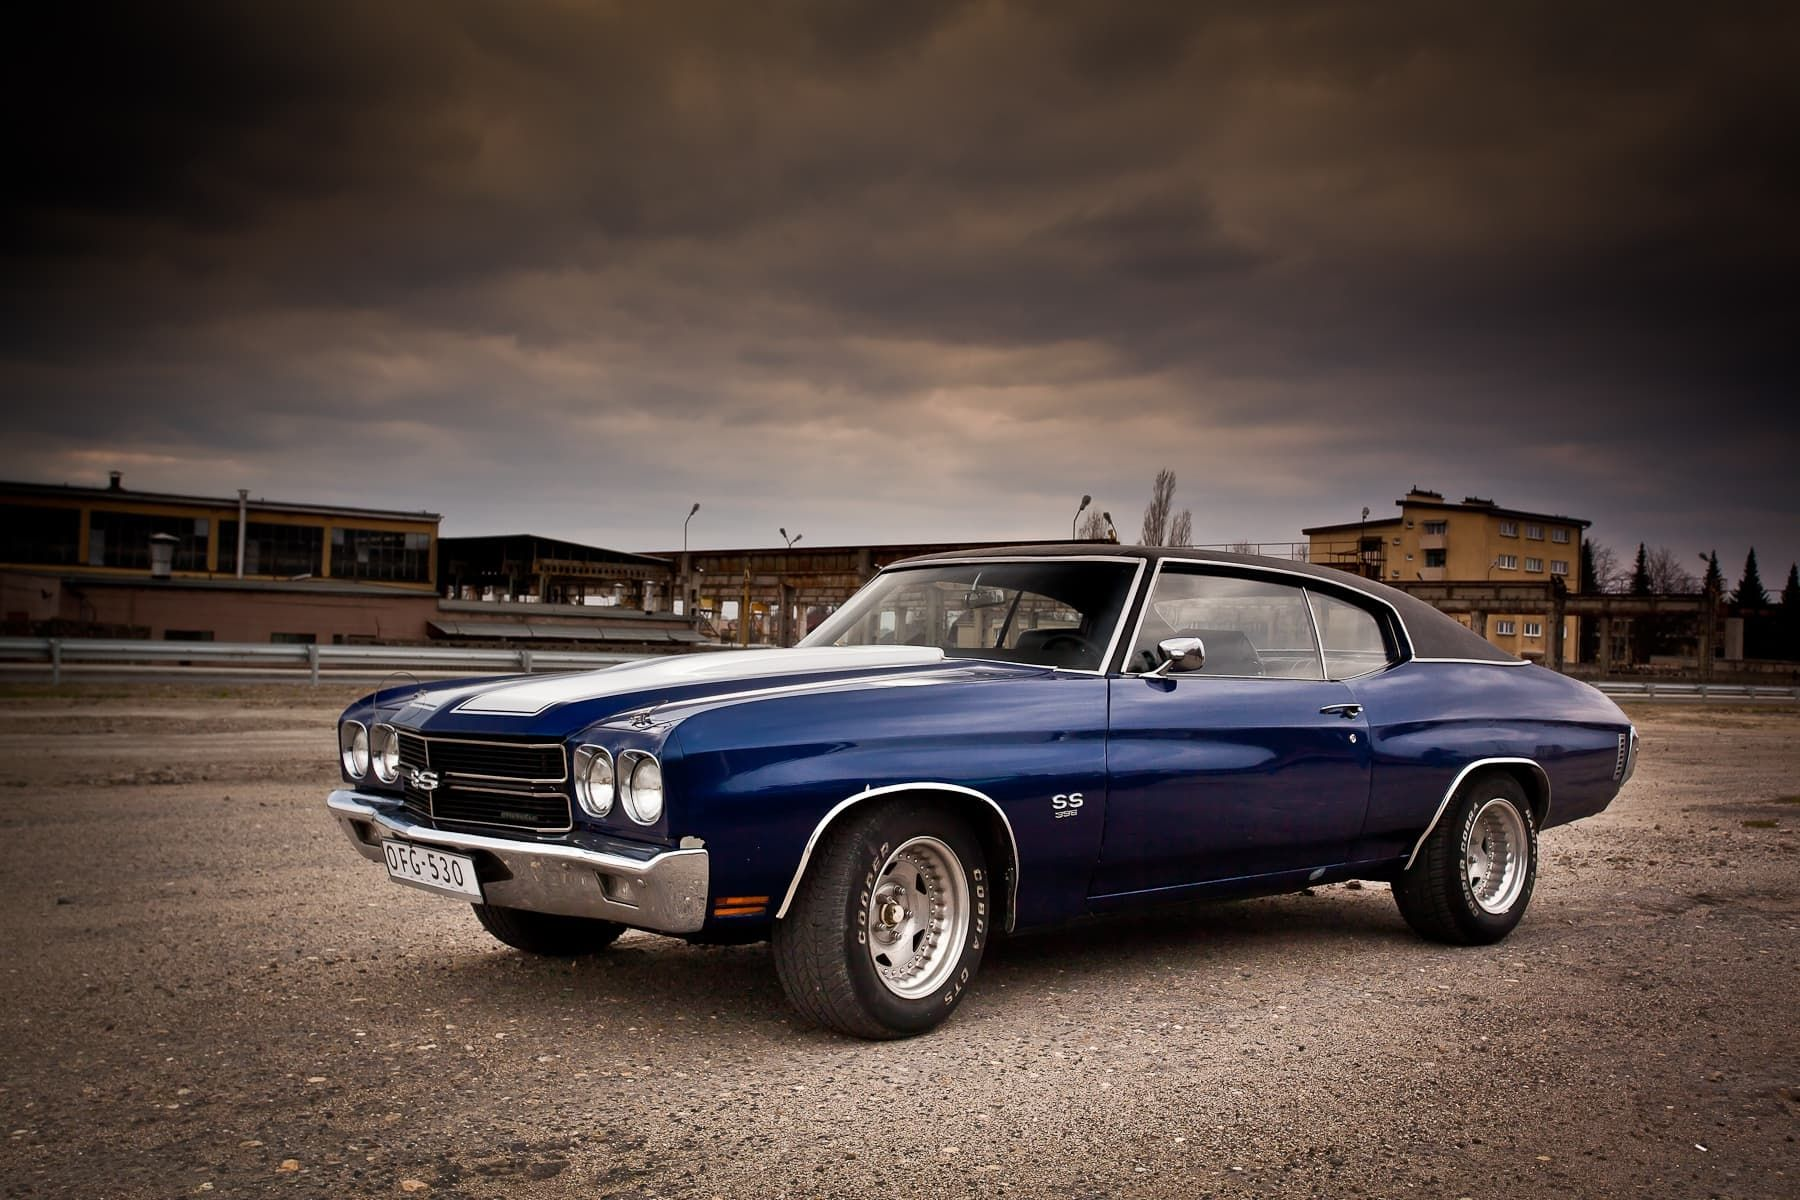 1970 Chevy Chevelle Ss Wallpaper